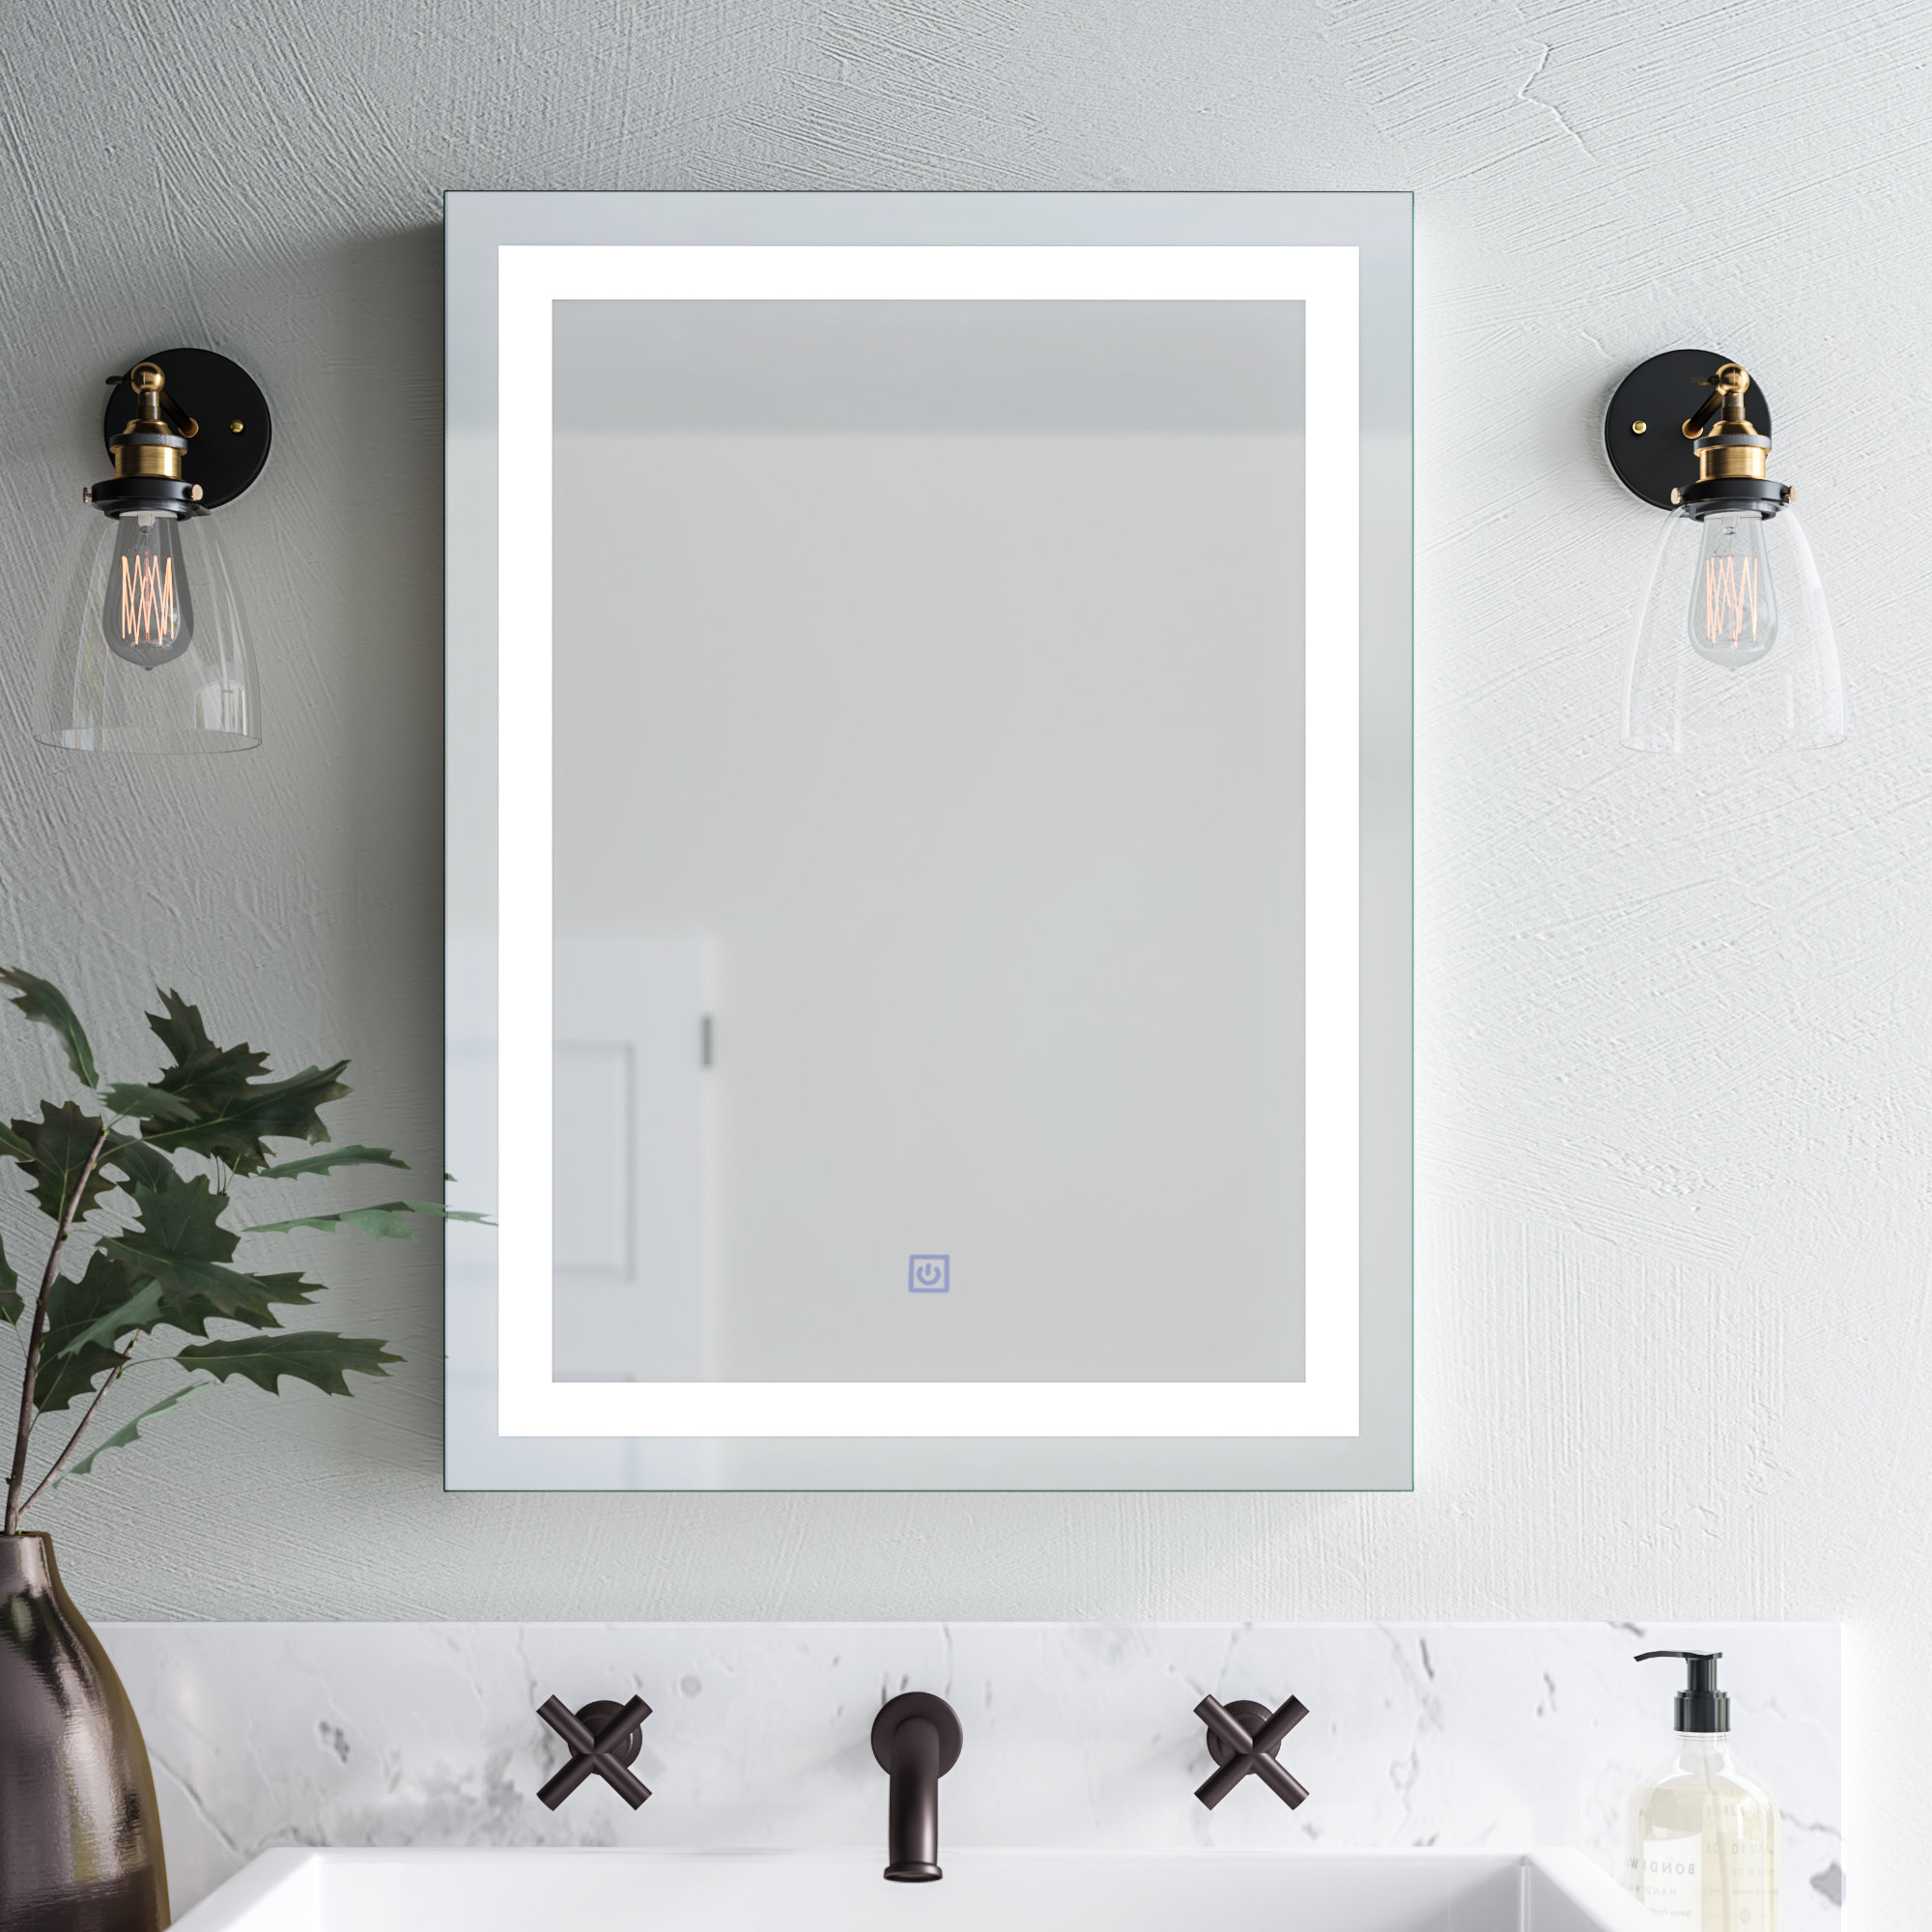 Well Liked Butcher Illuminated Modern & Contemporary Bathroom Wall Mirror Throughout Wall Mirror For Bathroom (View 4 of 20)